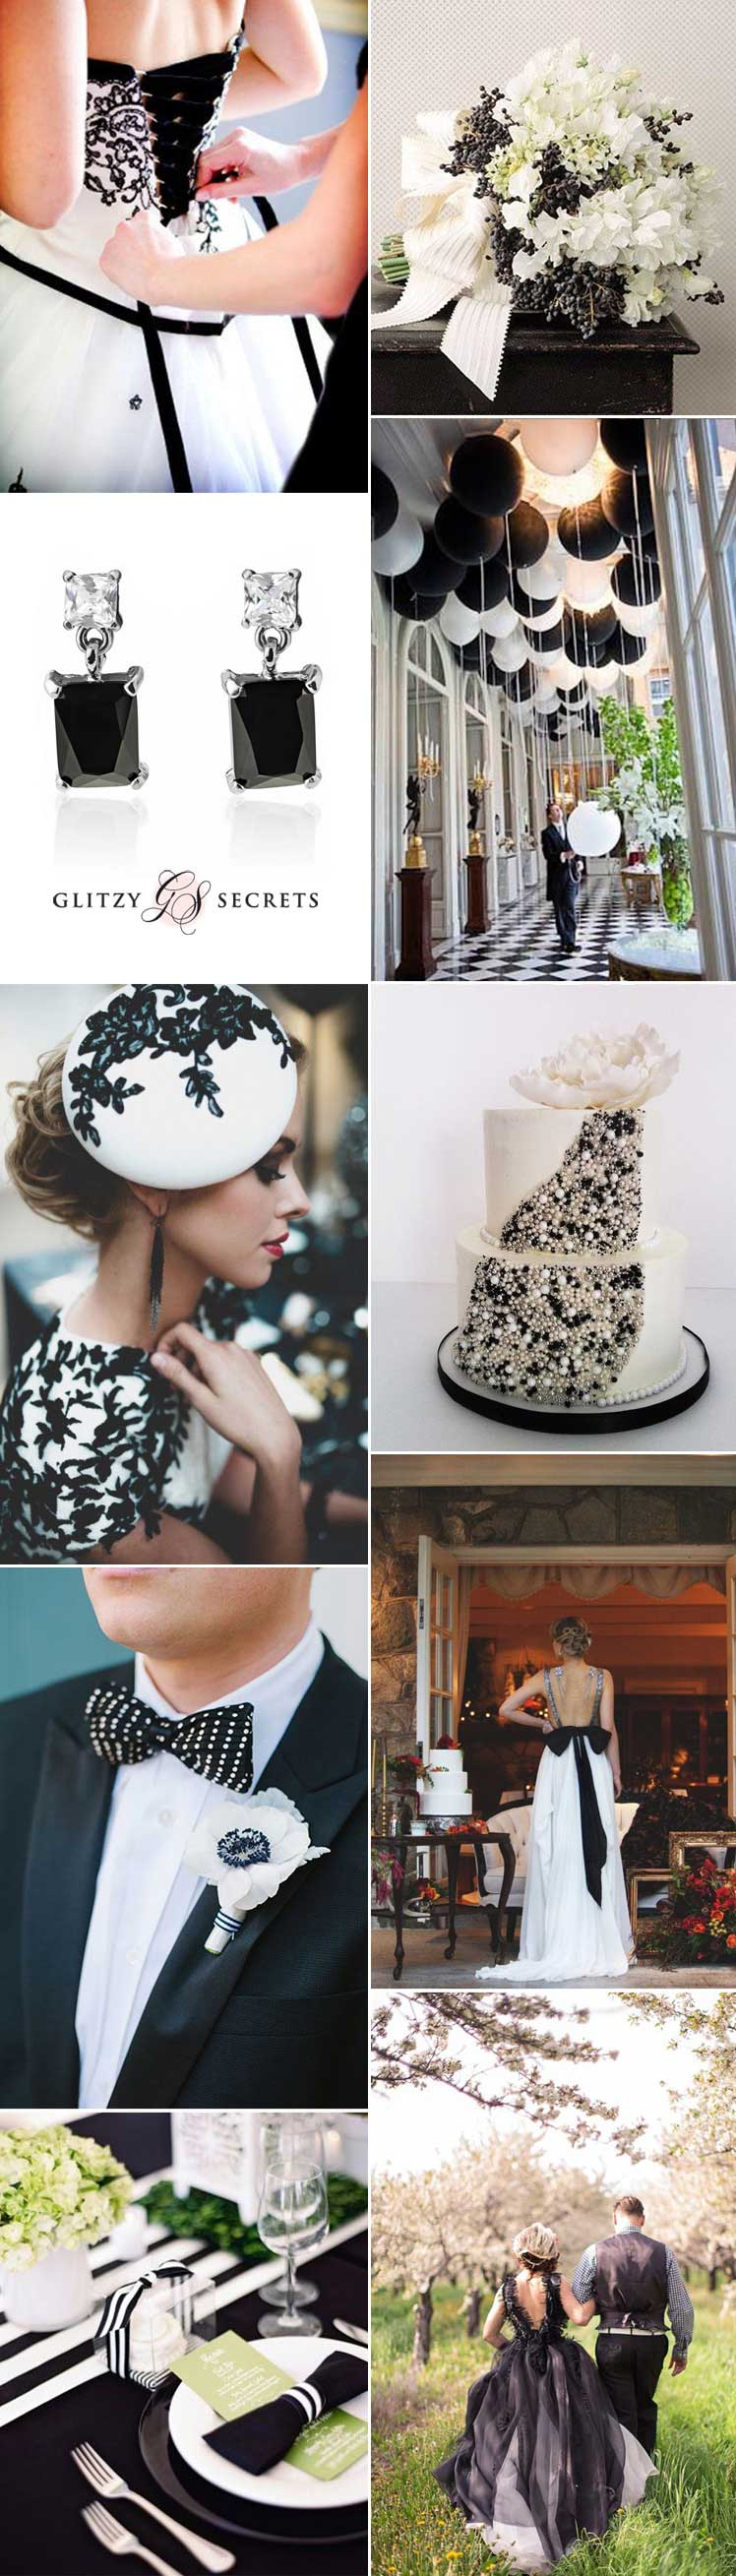 Glamorous black and white wedding ideas